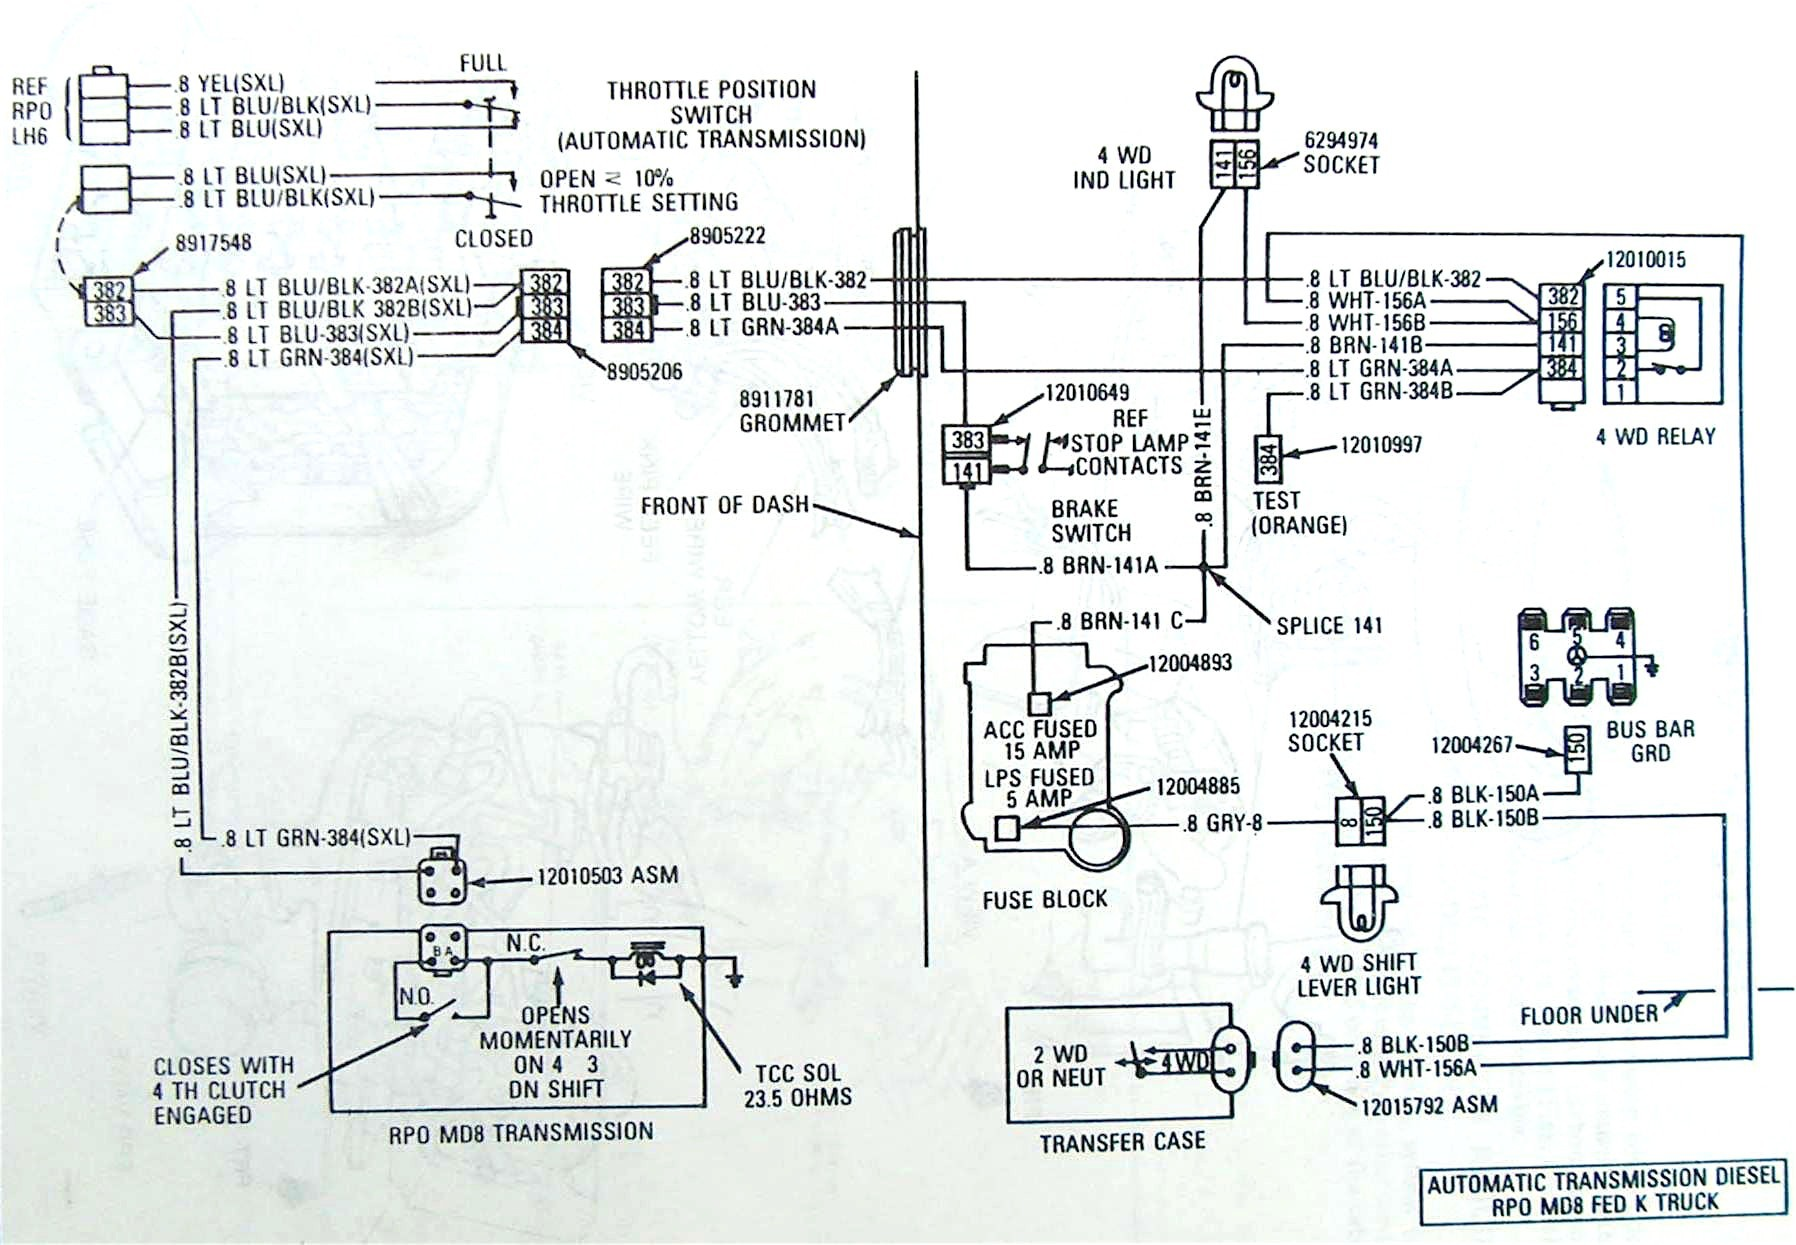 hight resolution of download image chevy 700r4 transmission parts diagram pc android 700r4 4l60e transmission wiring diagram